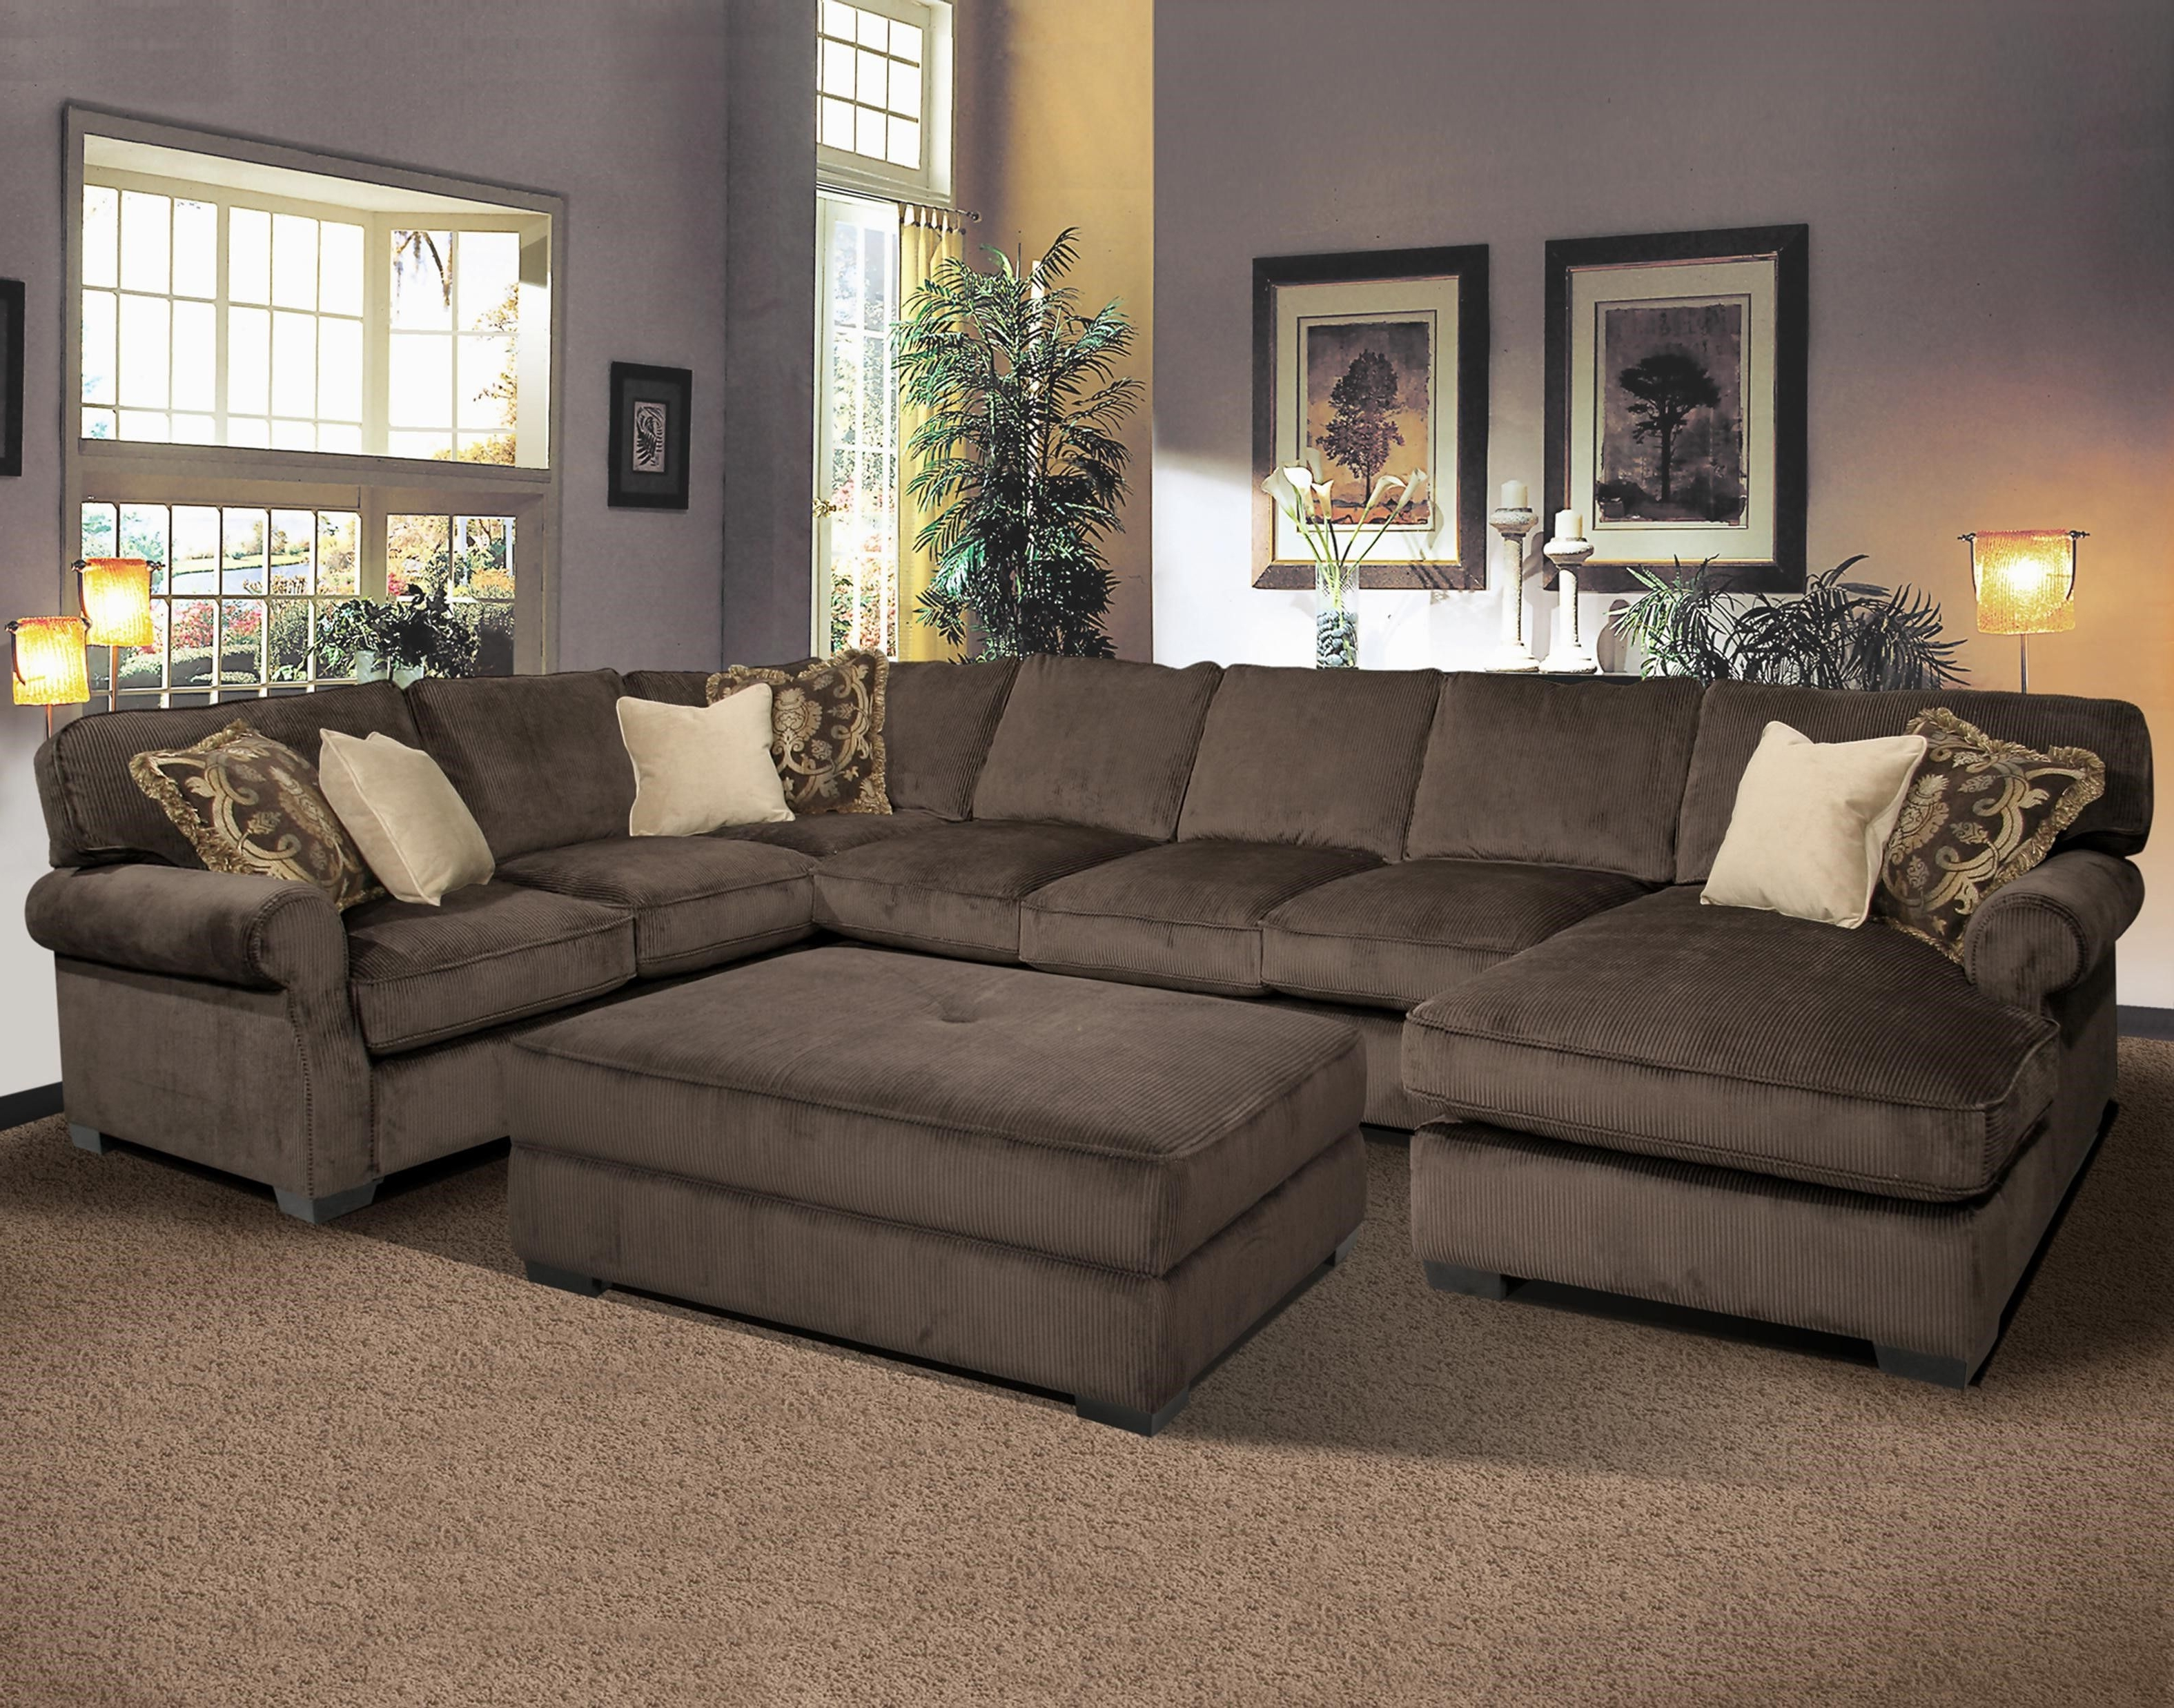 Comfortable Living Room Sofas Design With Elegant Overstuffed Throughout Most Popular Chaise Lounge Sofas For Sale (View 4 of 15)